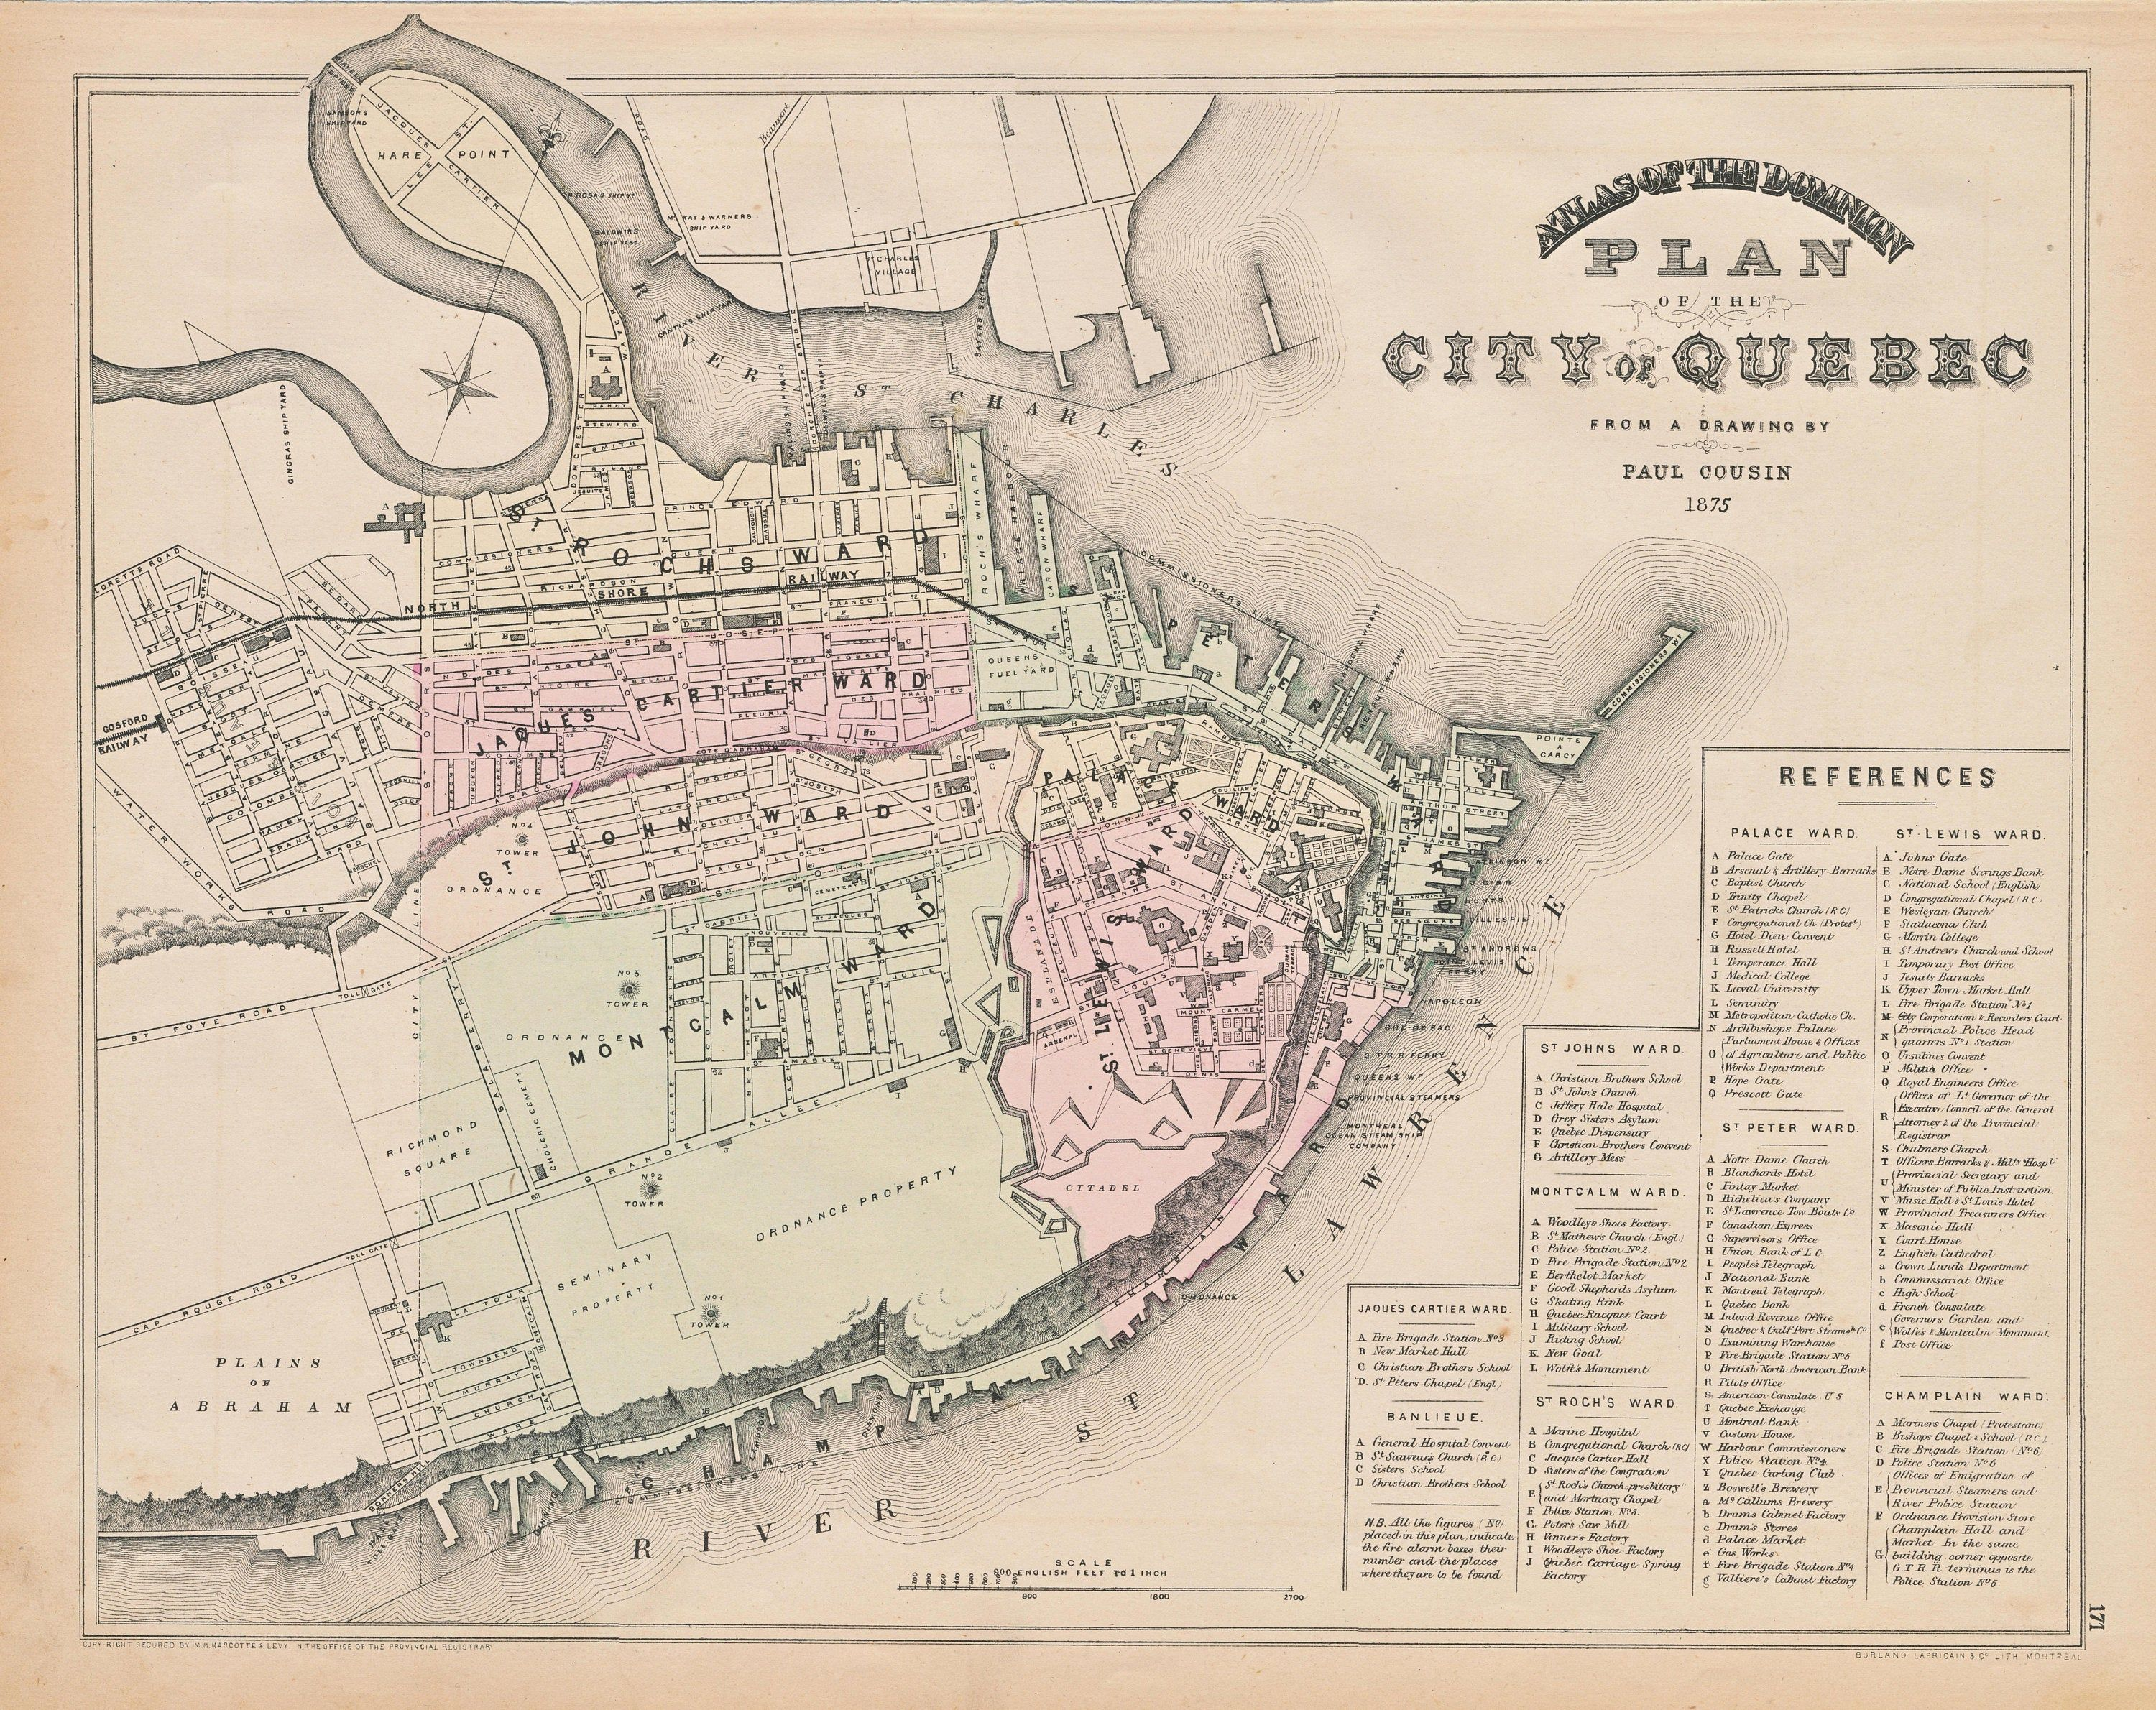 Map Of Quebec City In Canada In The 1800s 1875 Rare Antique Map of Quebec City Canada Vintage Hand | Etsy